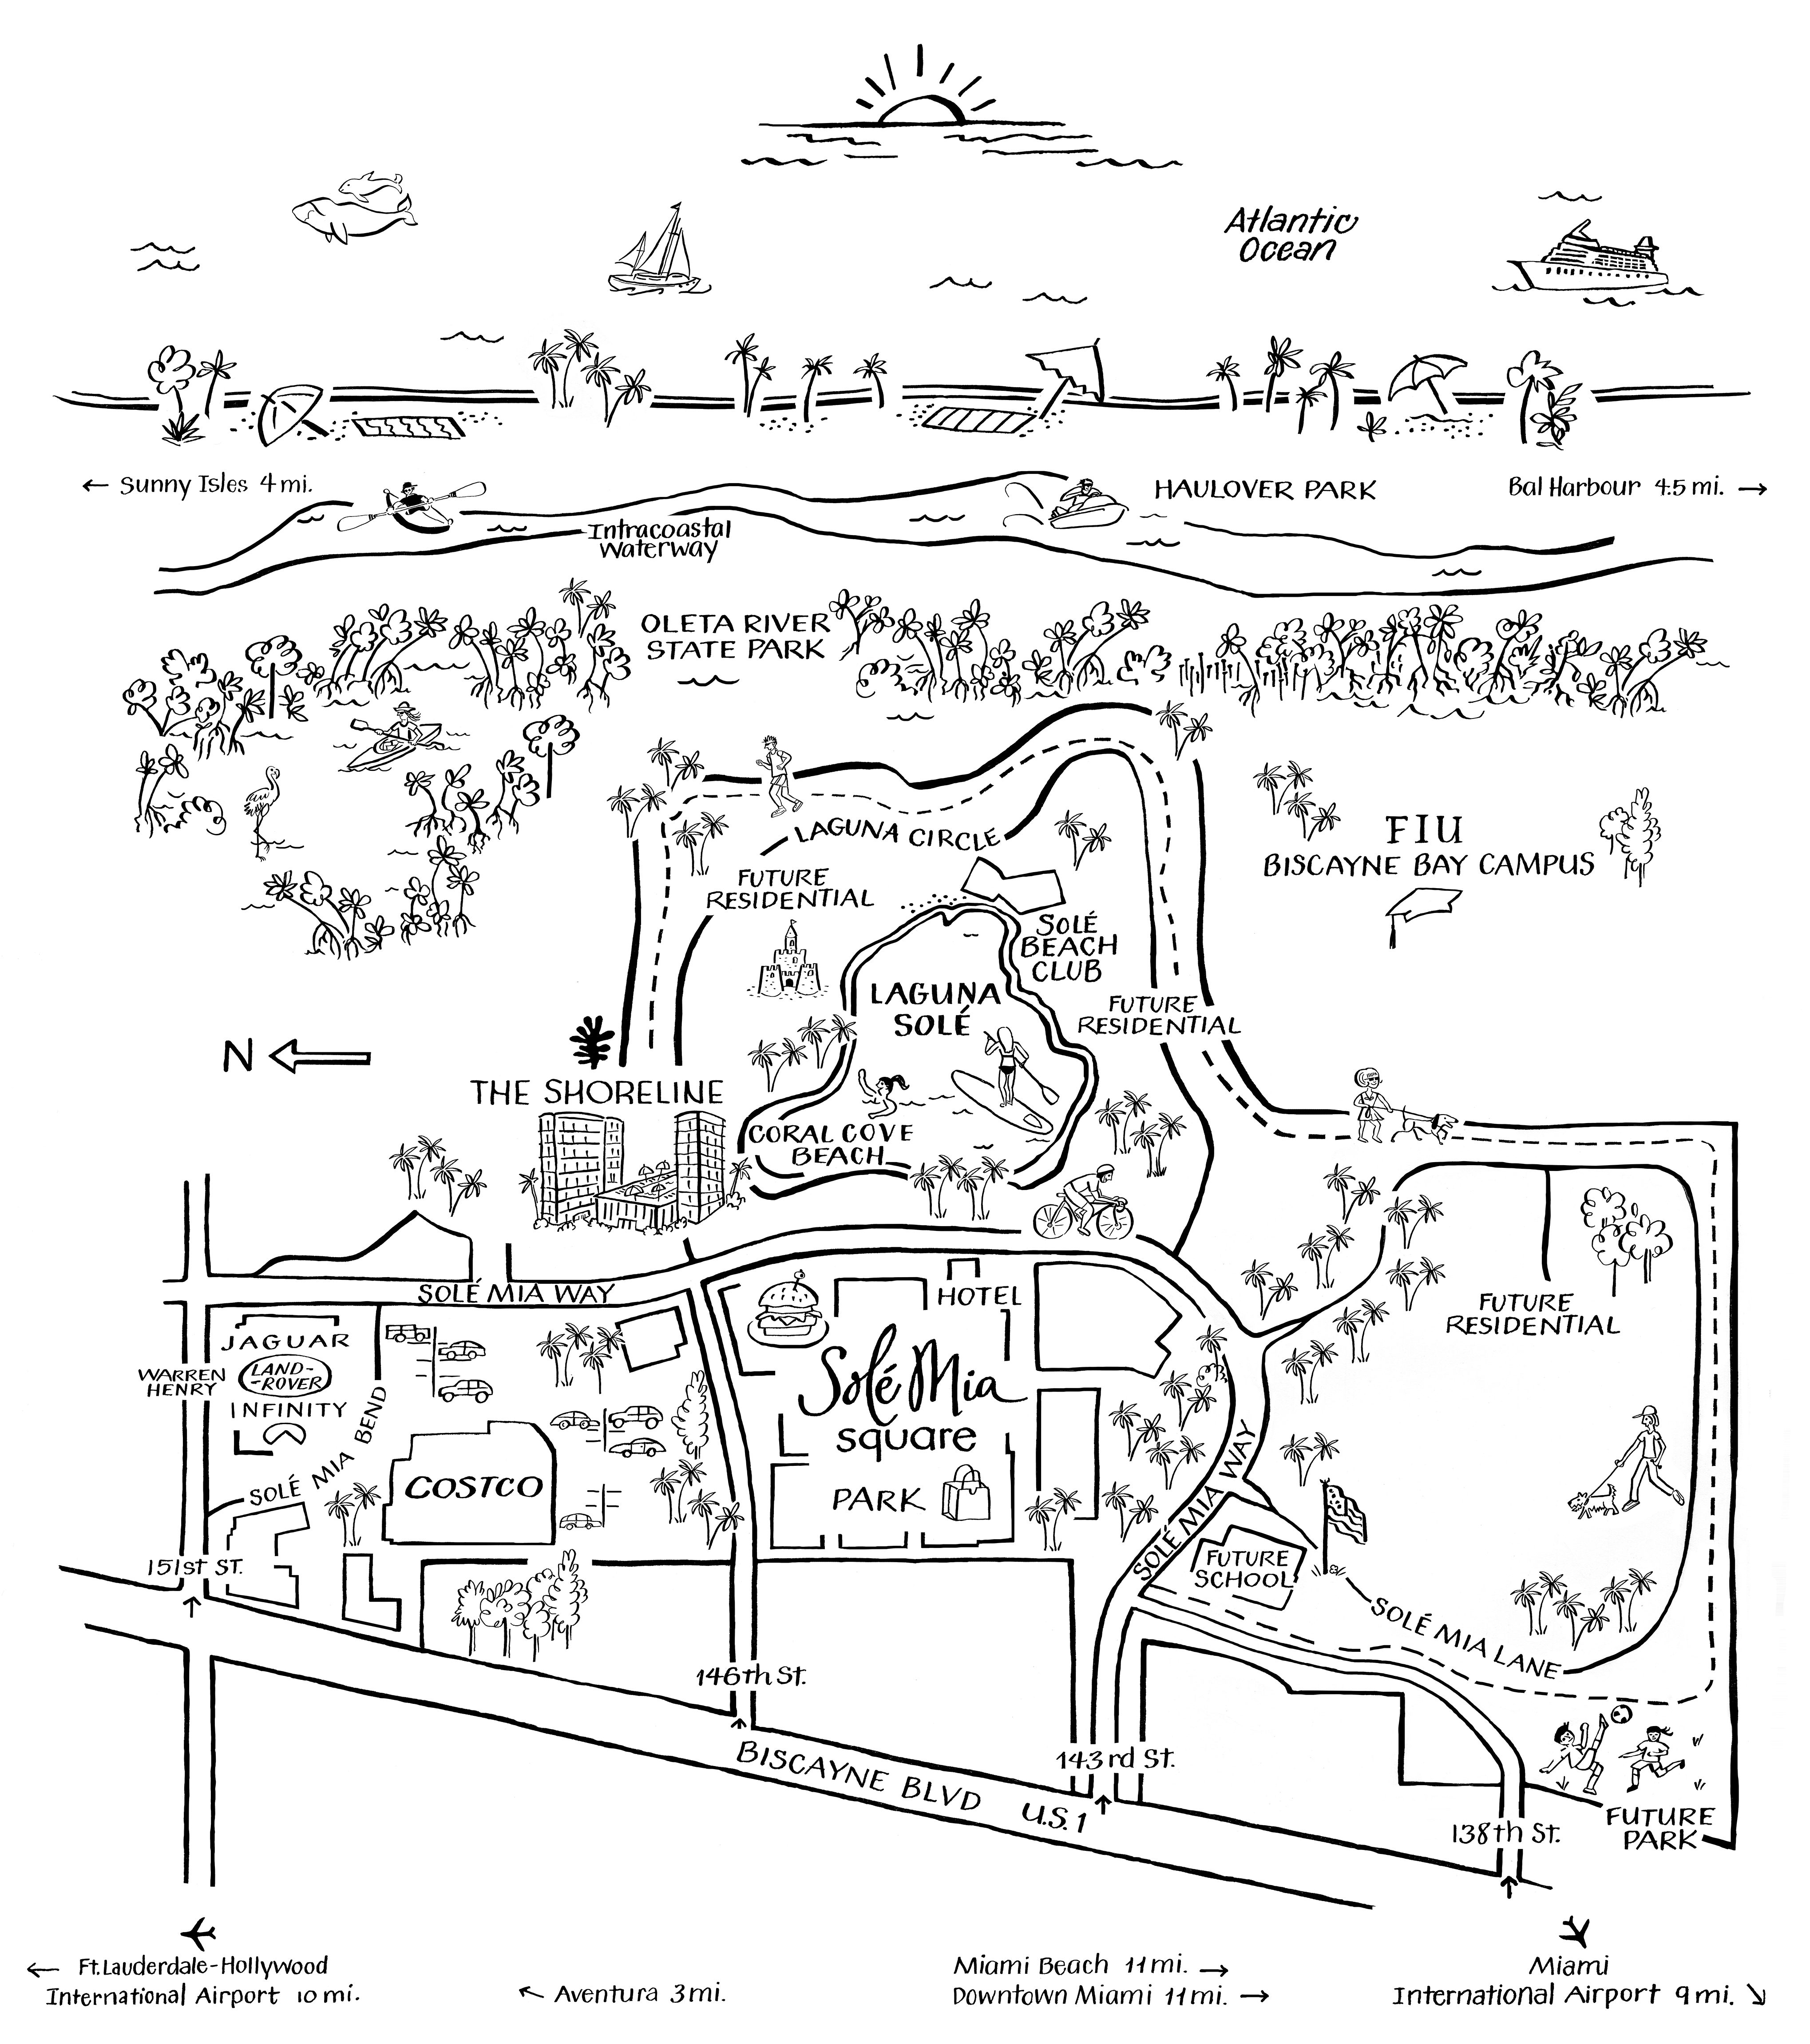 Map Illustration of the Shoreline at Solé Mia Apartments and the nearby Activities in North Miami